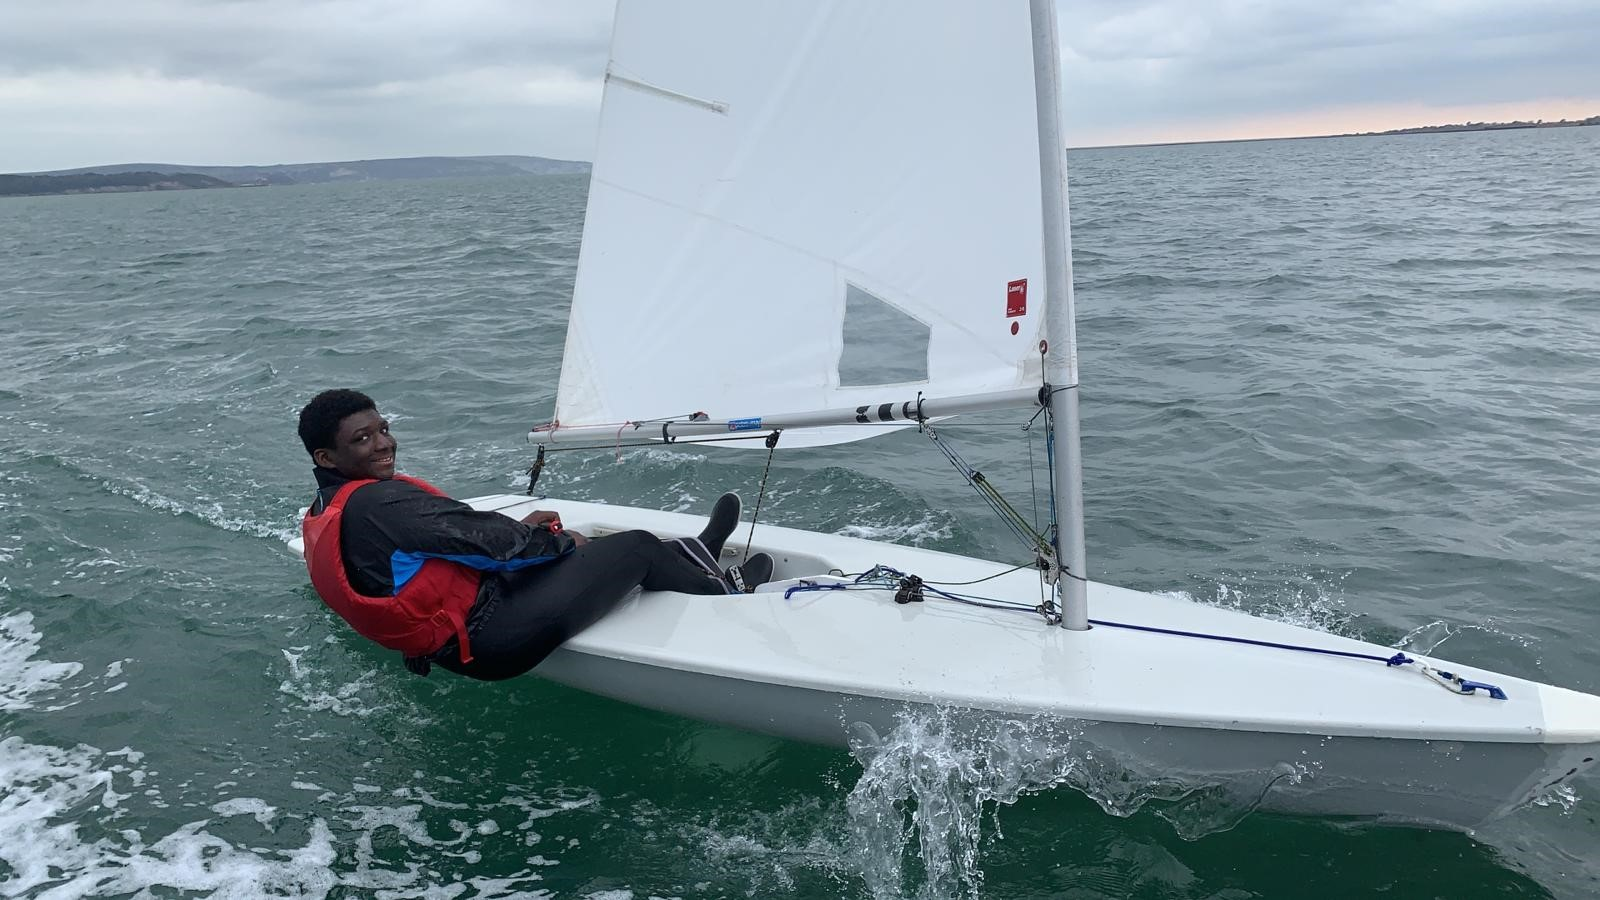 Young Achiever Jaydon on his Sailing Journey